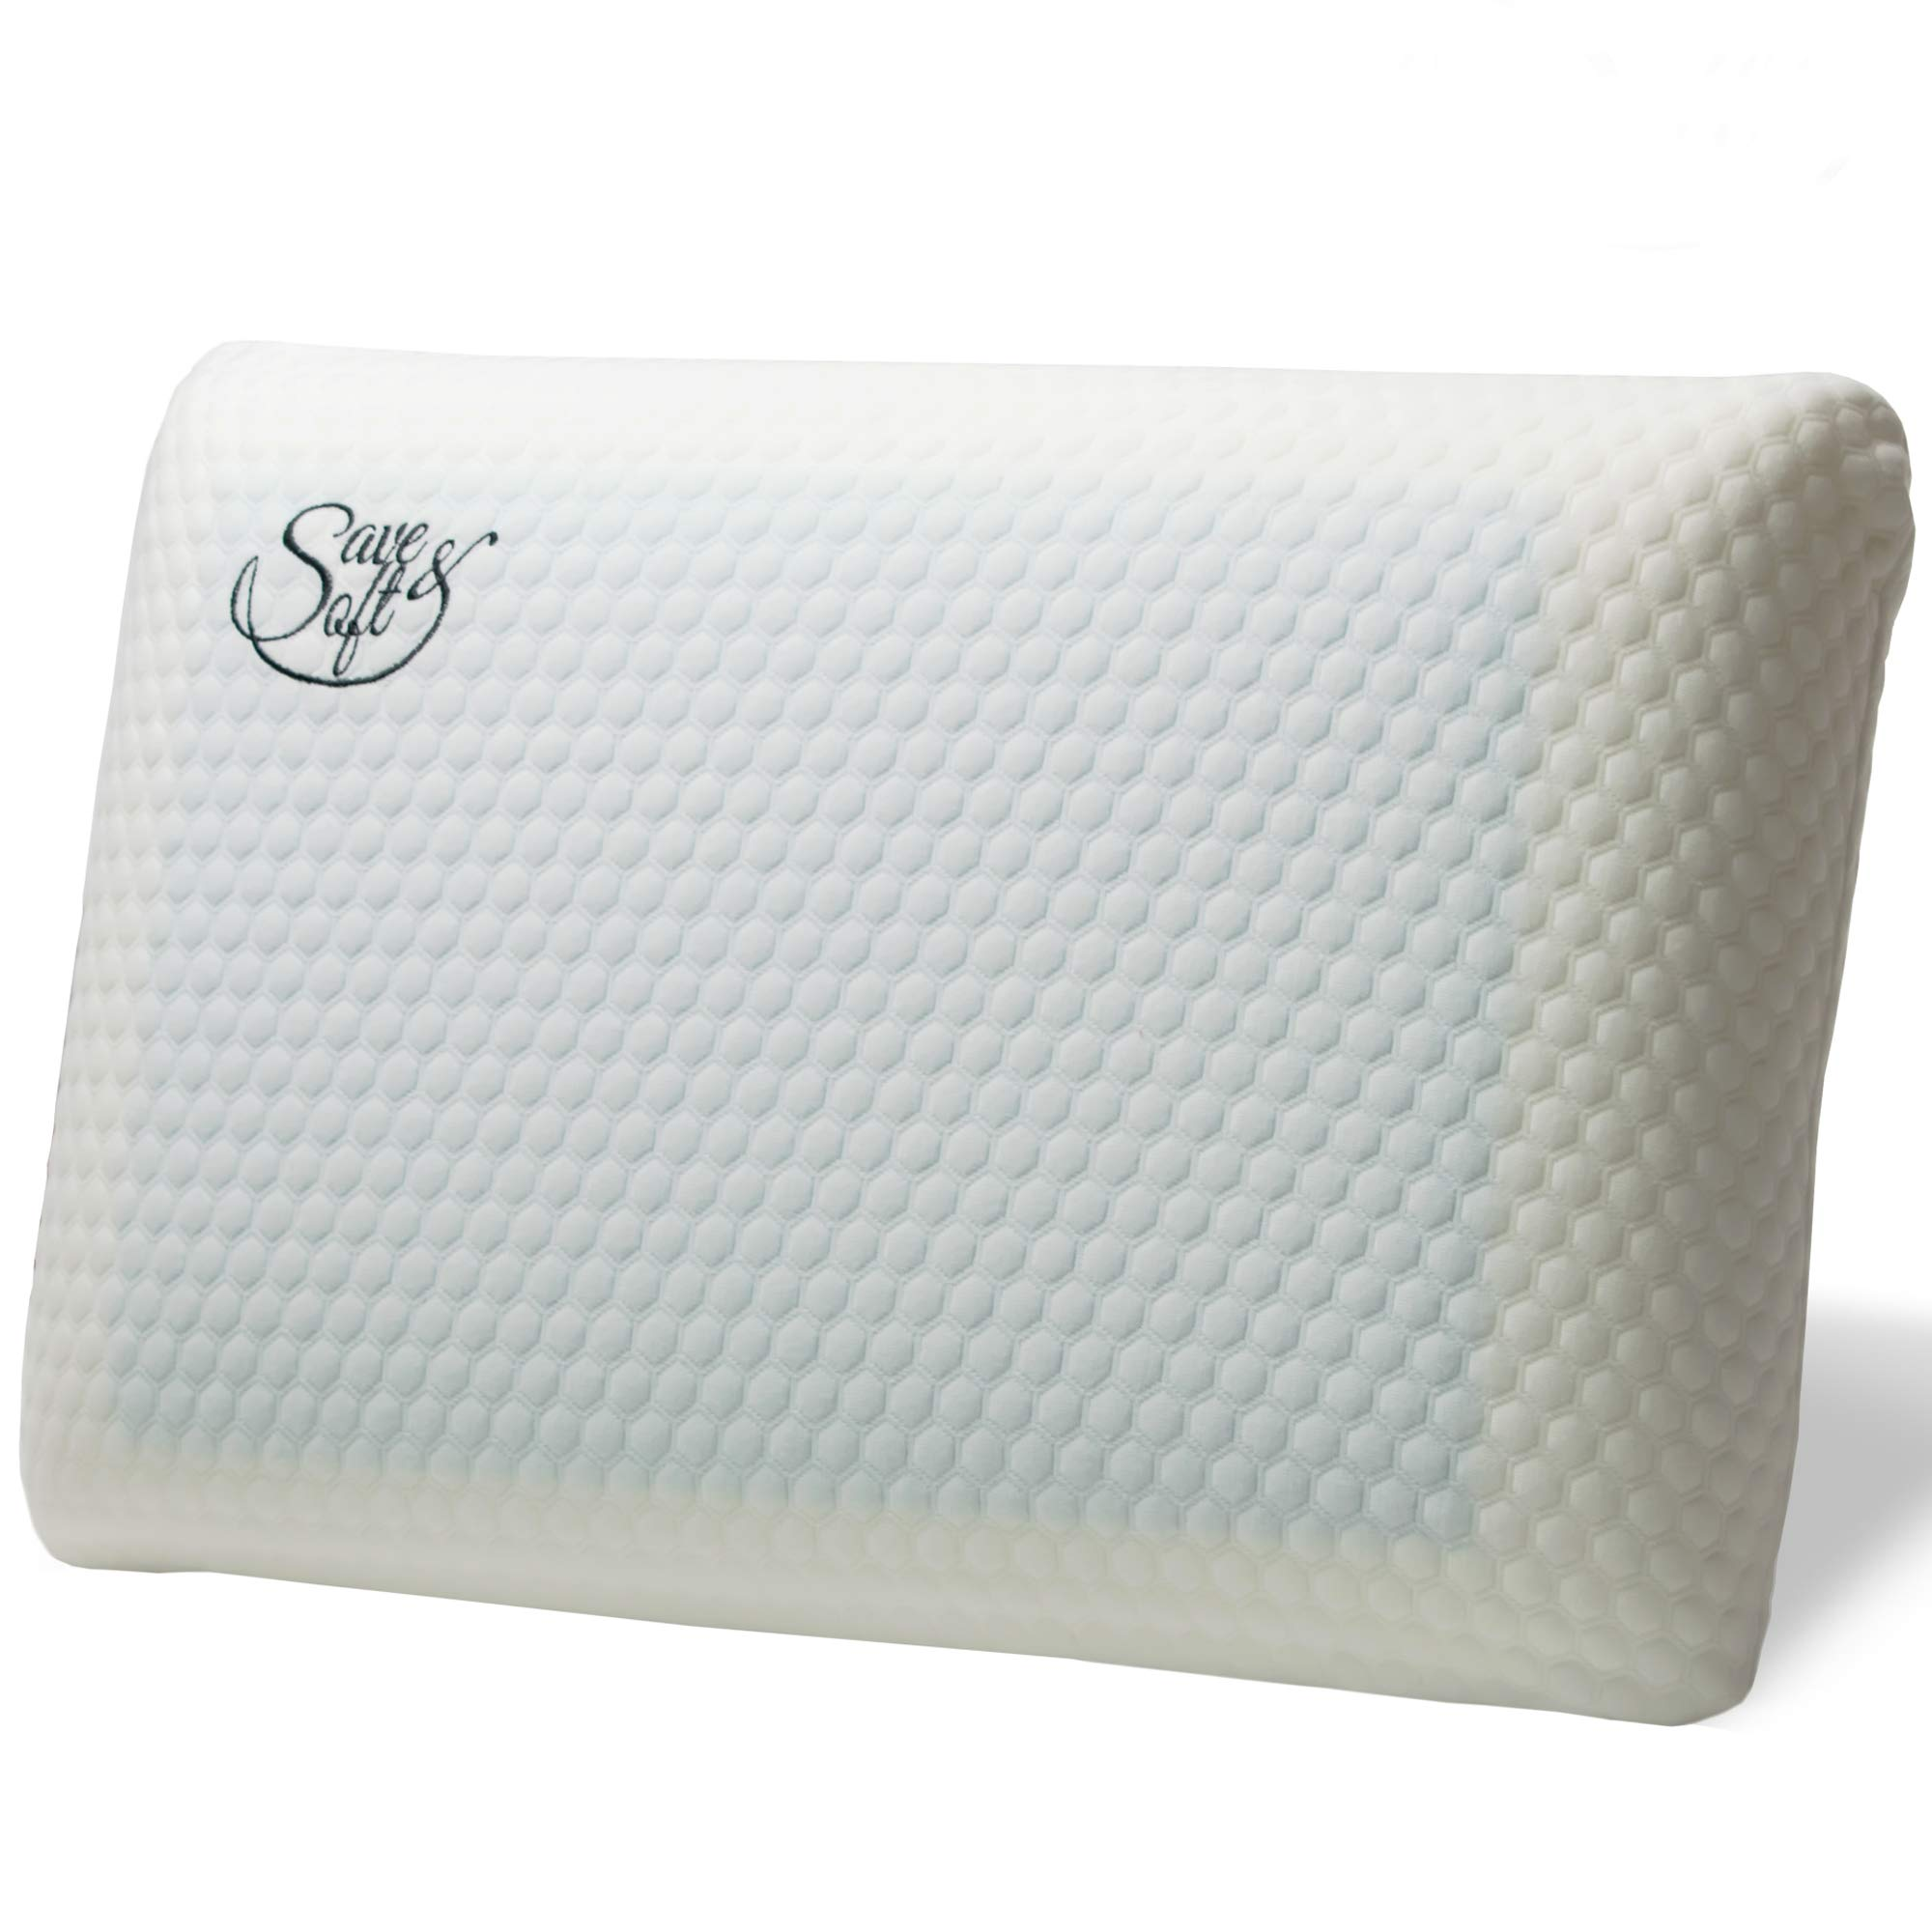 Orthopedic Memory Foam Pillow with Cooling gel - Comfortable Hypoallergenic Ergonomic Cervical Pillow with Optimum Neck Support Pain Relief - Removable Washable Cover (Gel Traditional, Standard)